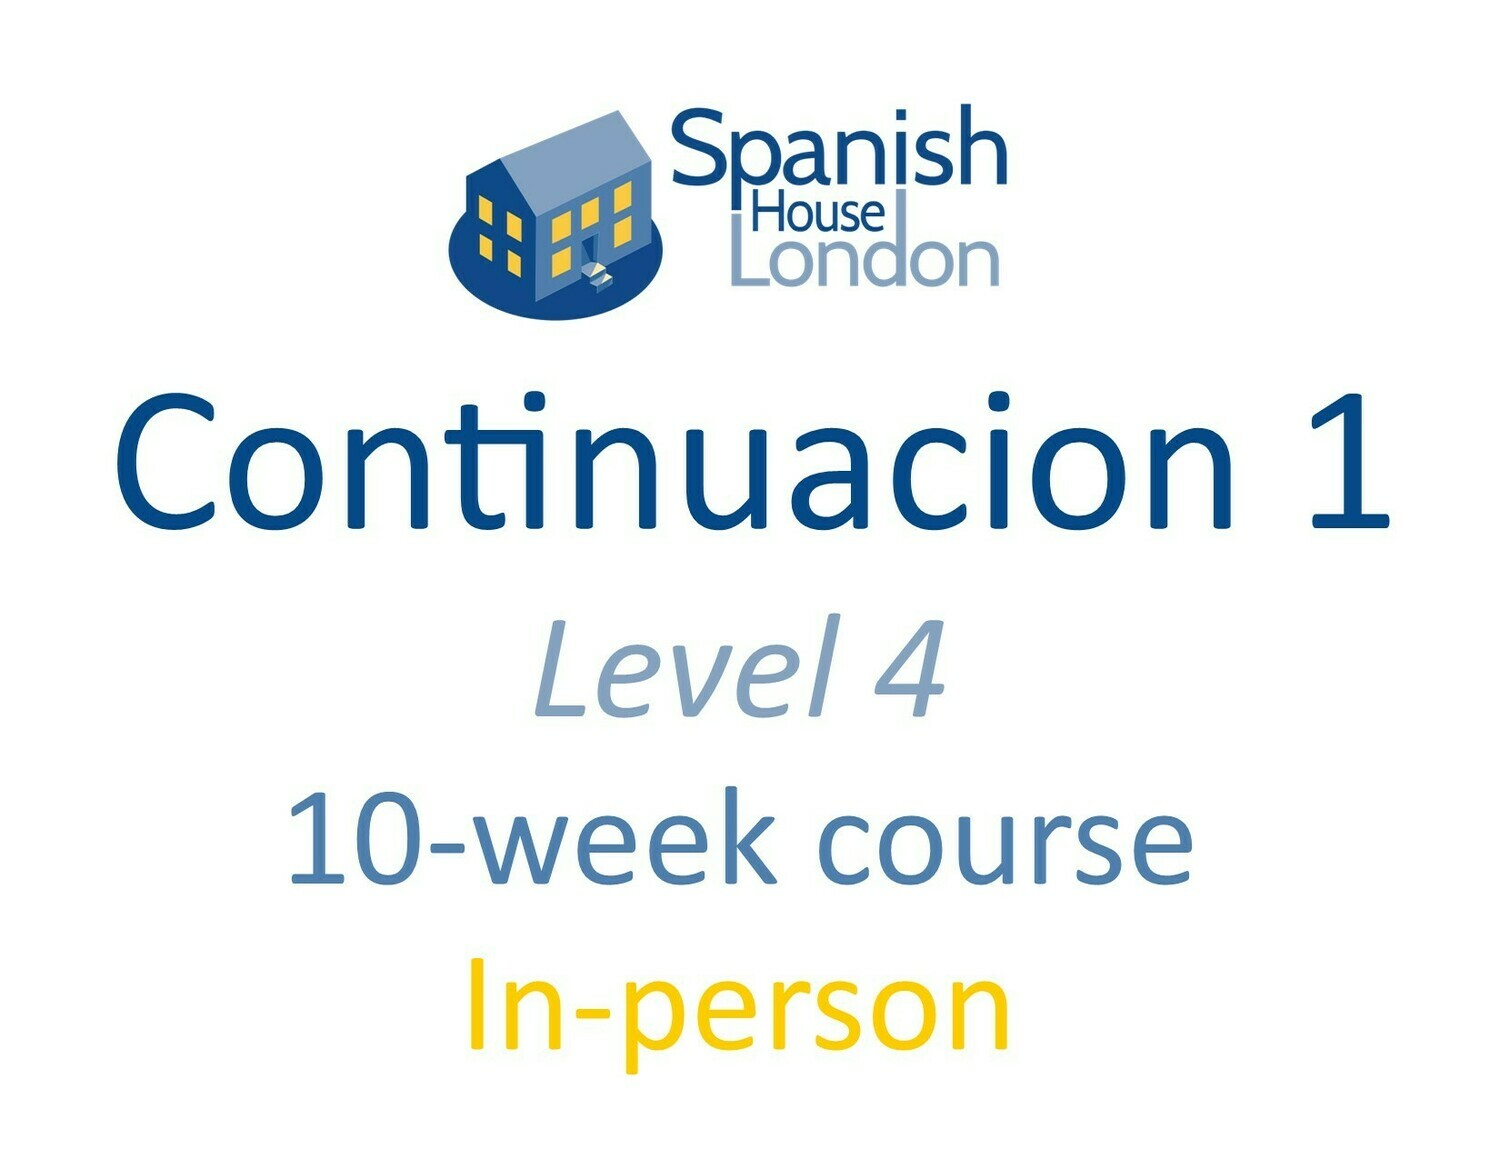 Continuacion 1 Course starting on 26th May at 7.30pm in Euston / King's Cross